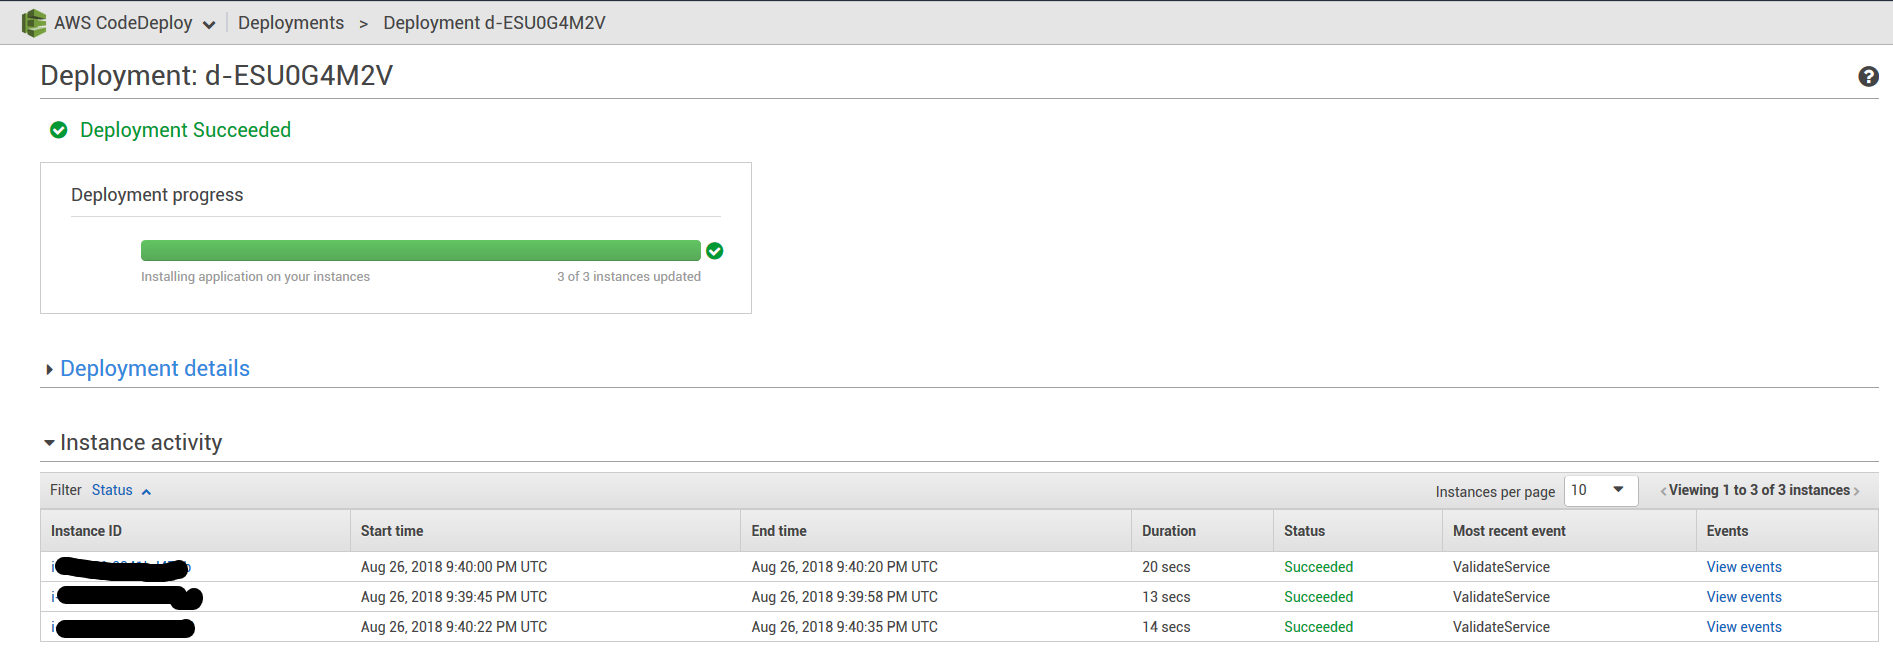 Figure 4 - AWS CodeDeploy Report